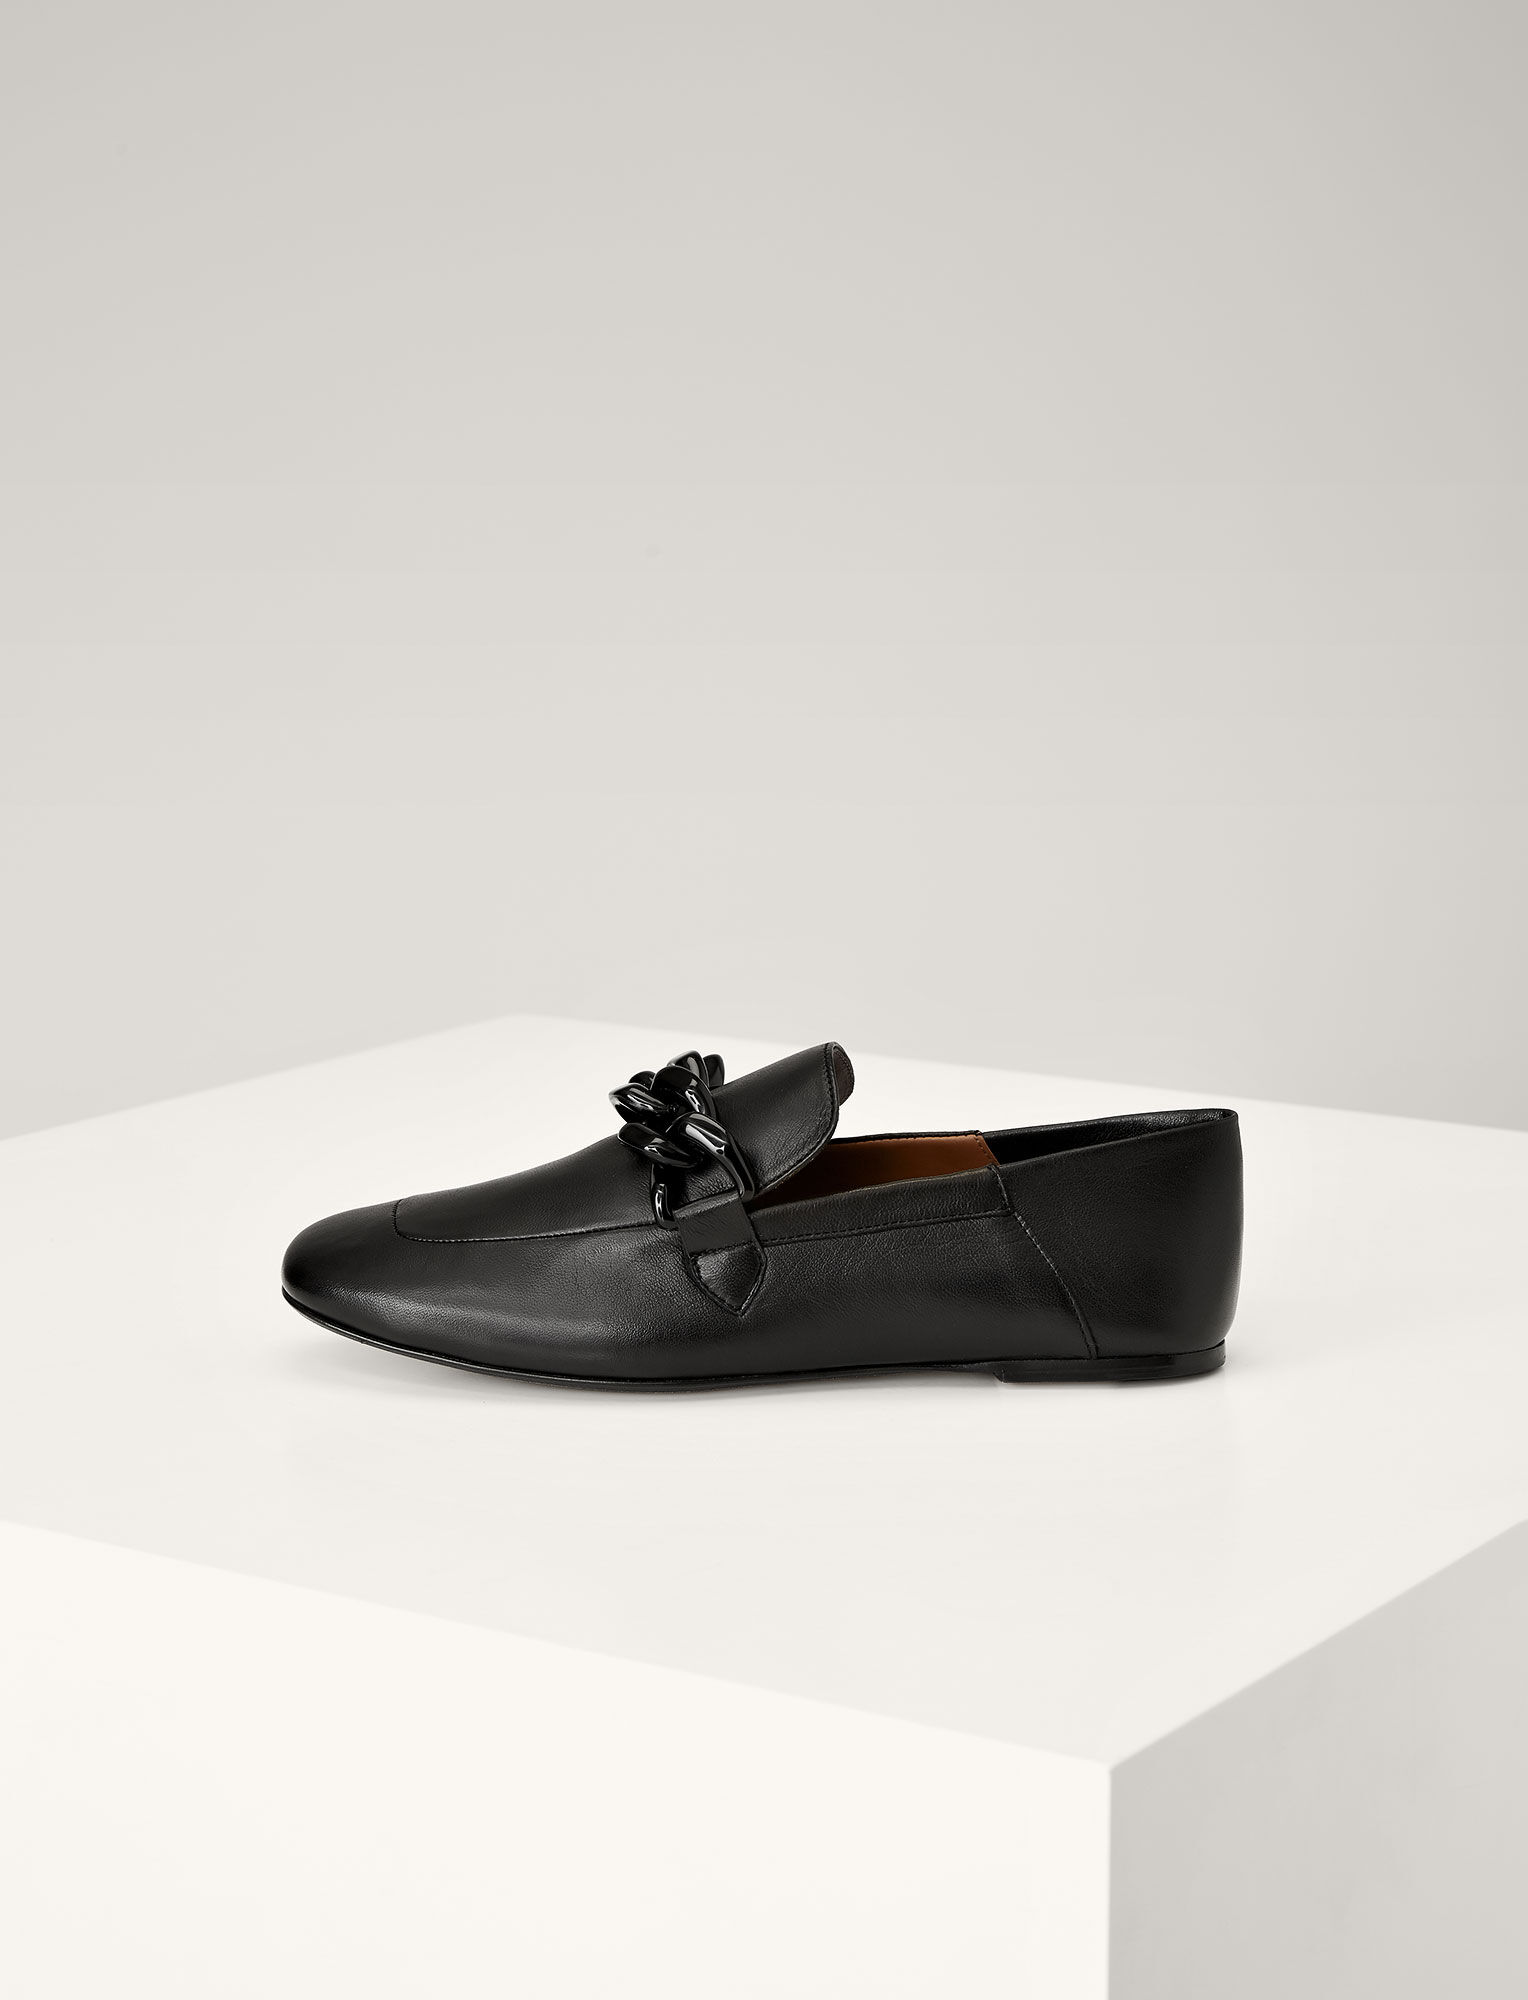 Joseph, The Ripley Loafers, in BLACK